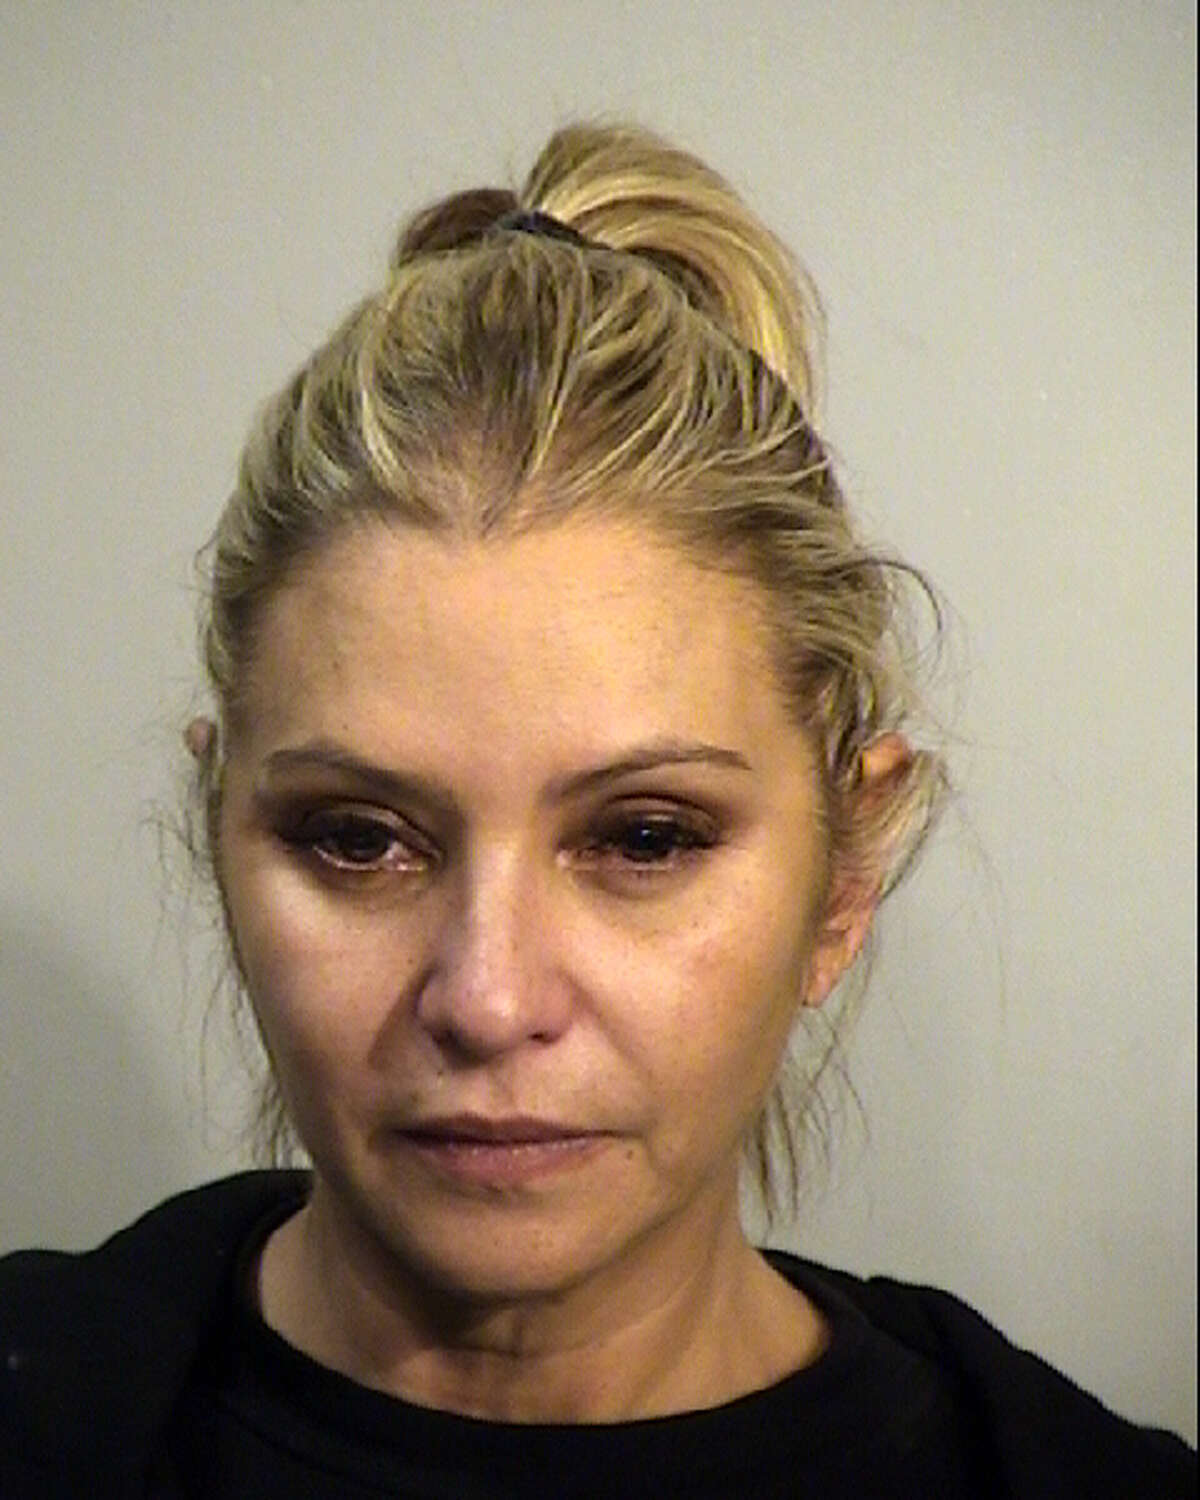 Danielle Stefani Arellano, 52, was arrested Friday, September 29, 2018. Her charges were tossed out by the Bexar County District Attorney.